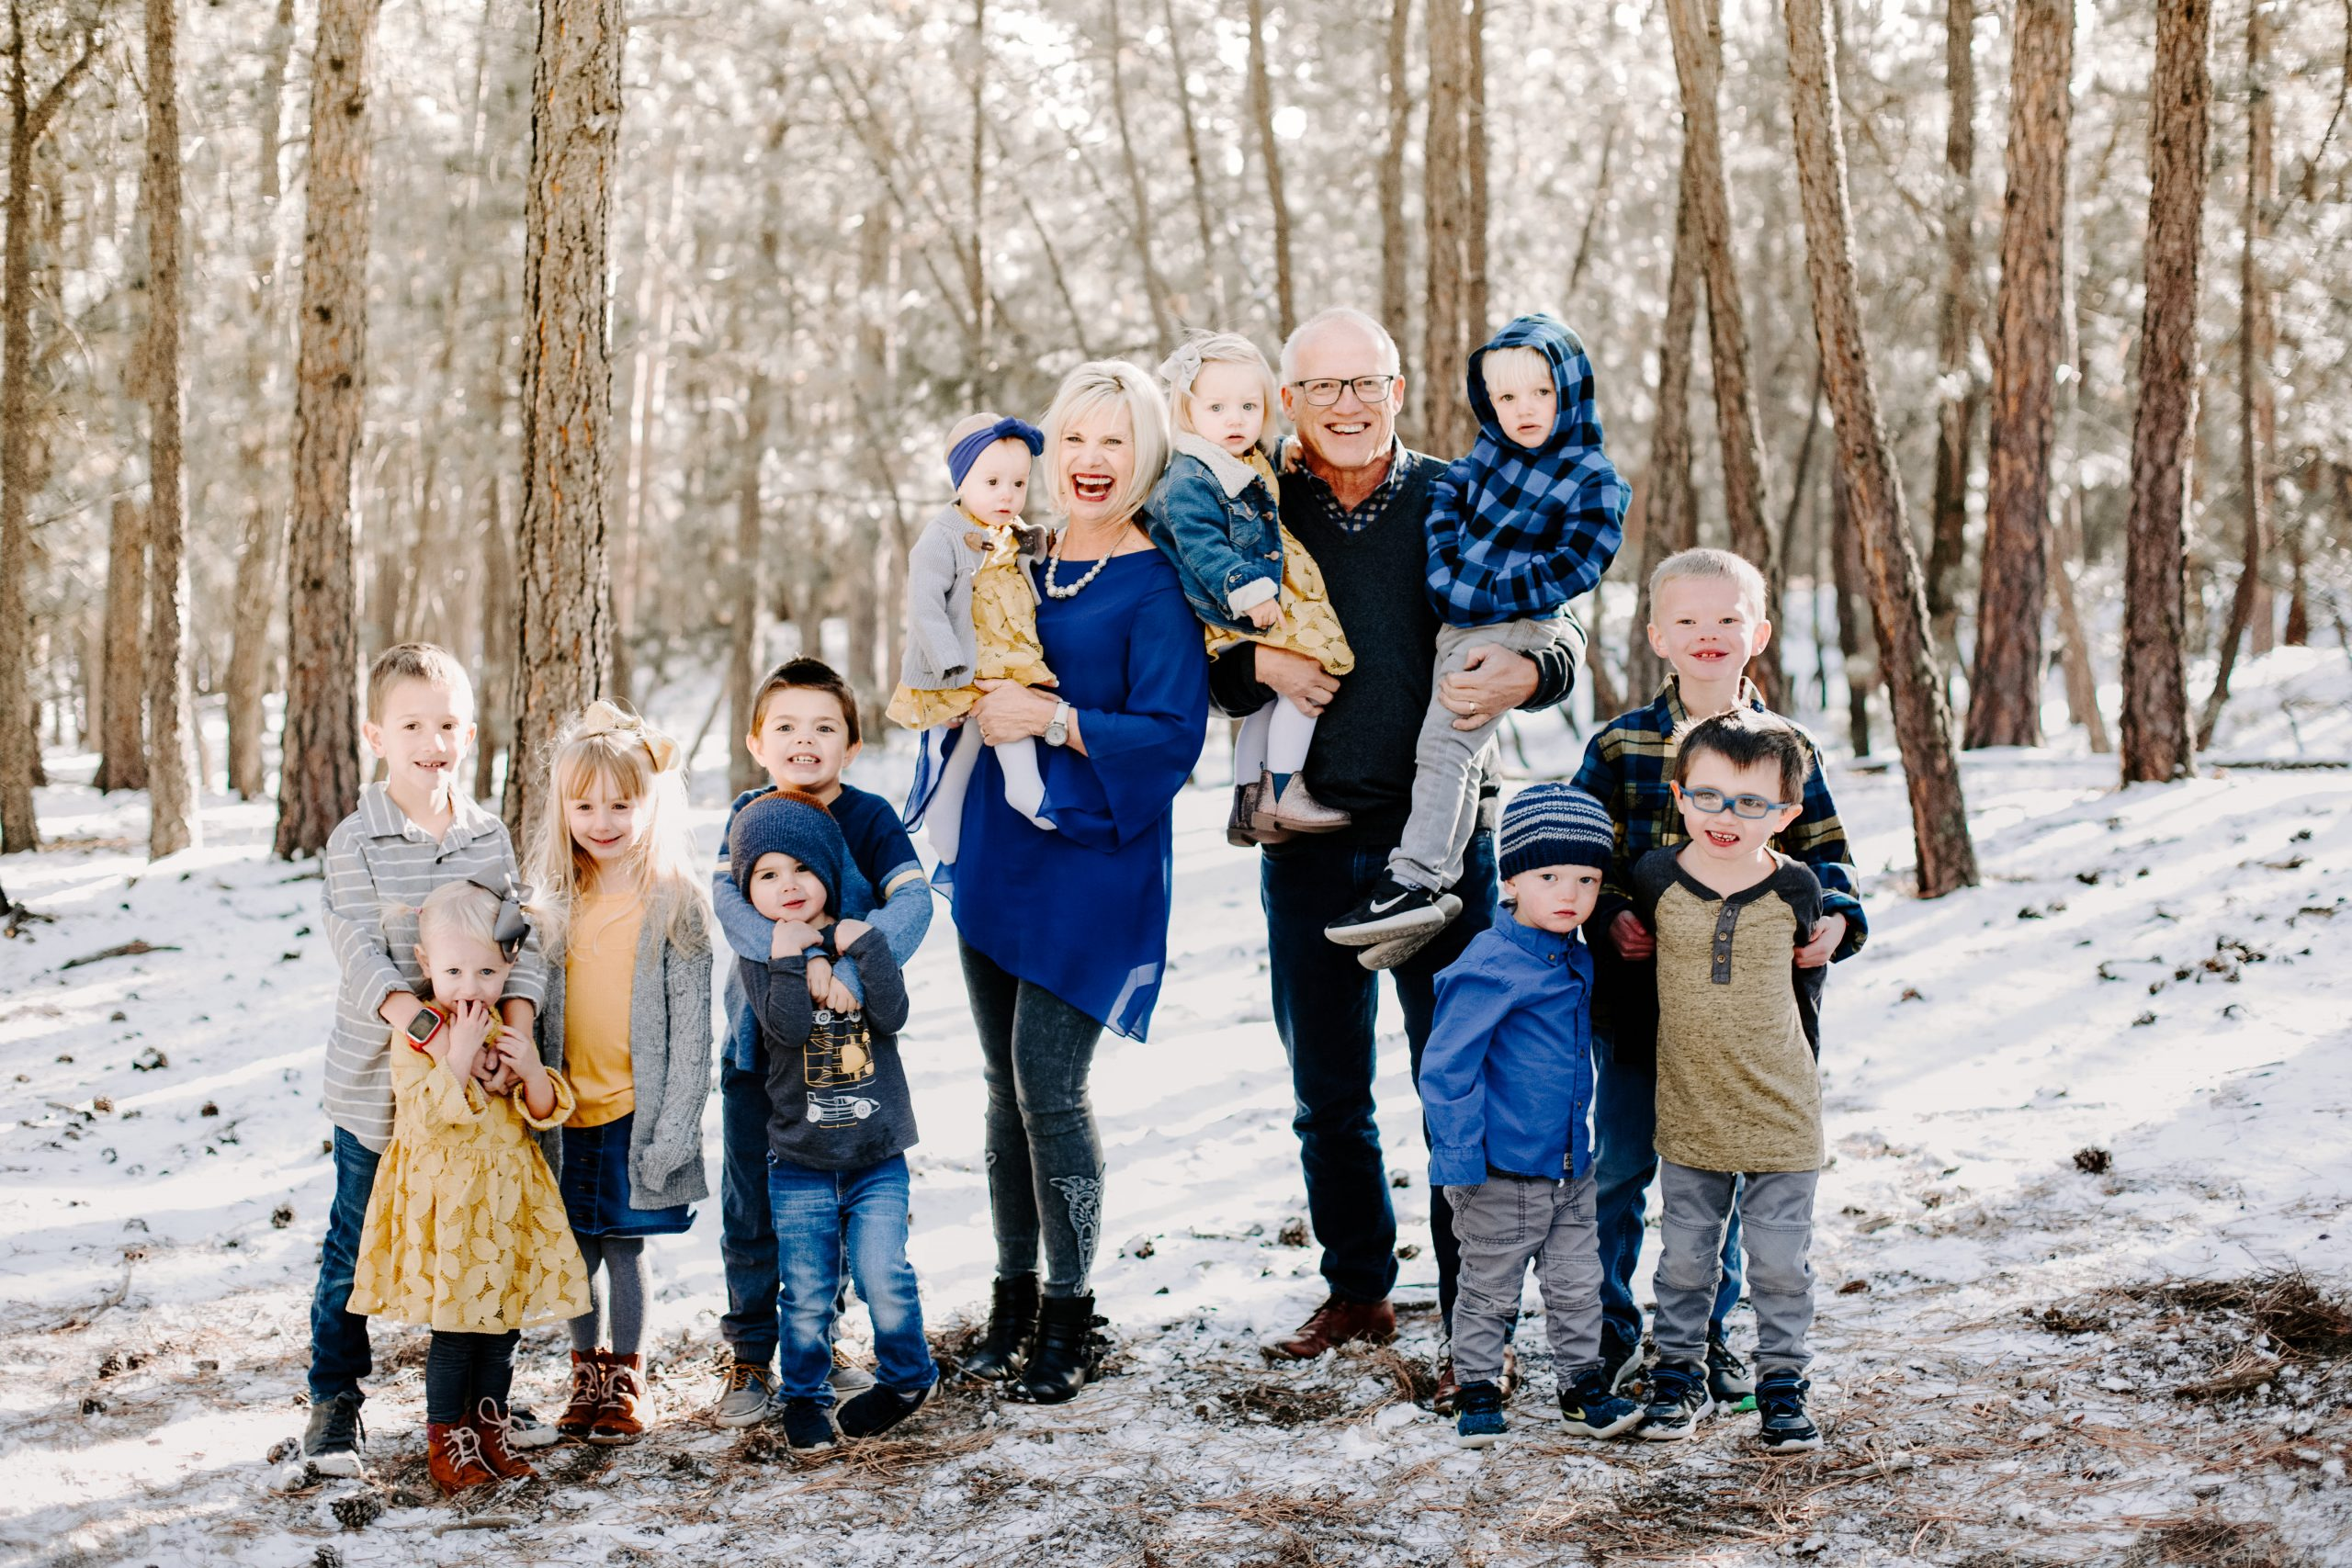 Steve and Becky Harling with Grandchildren